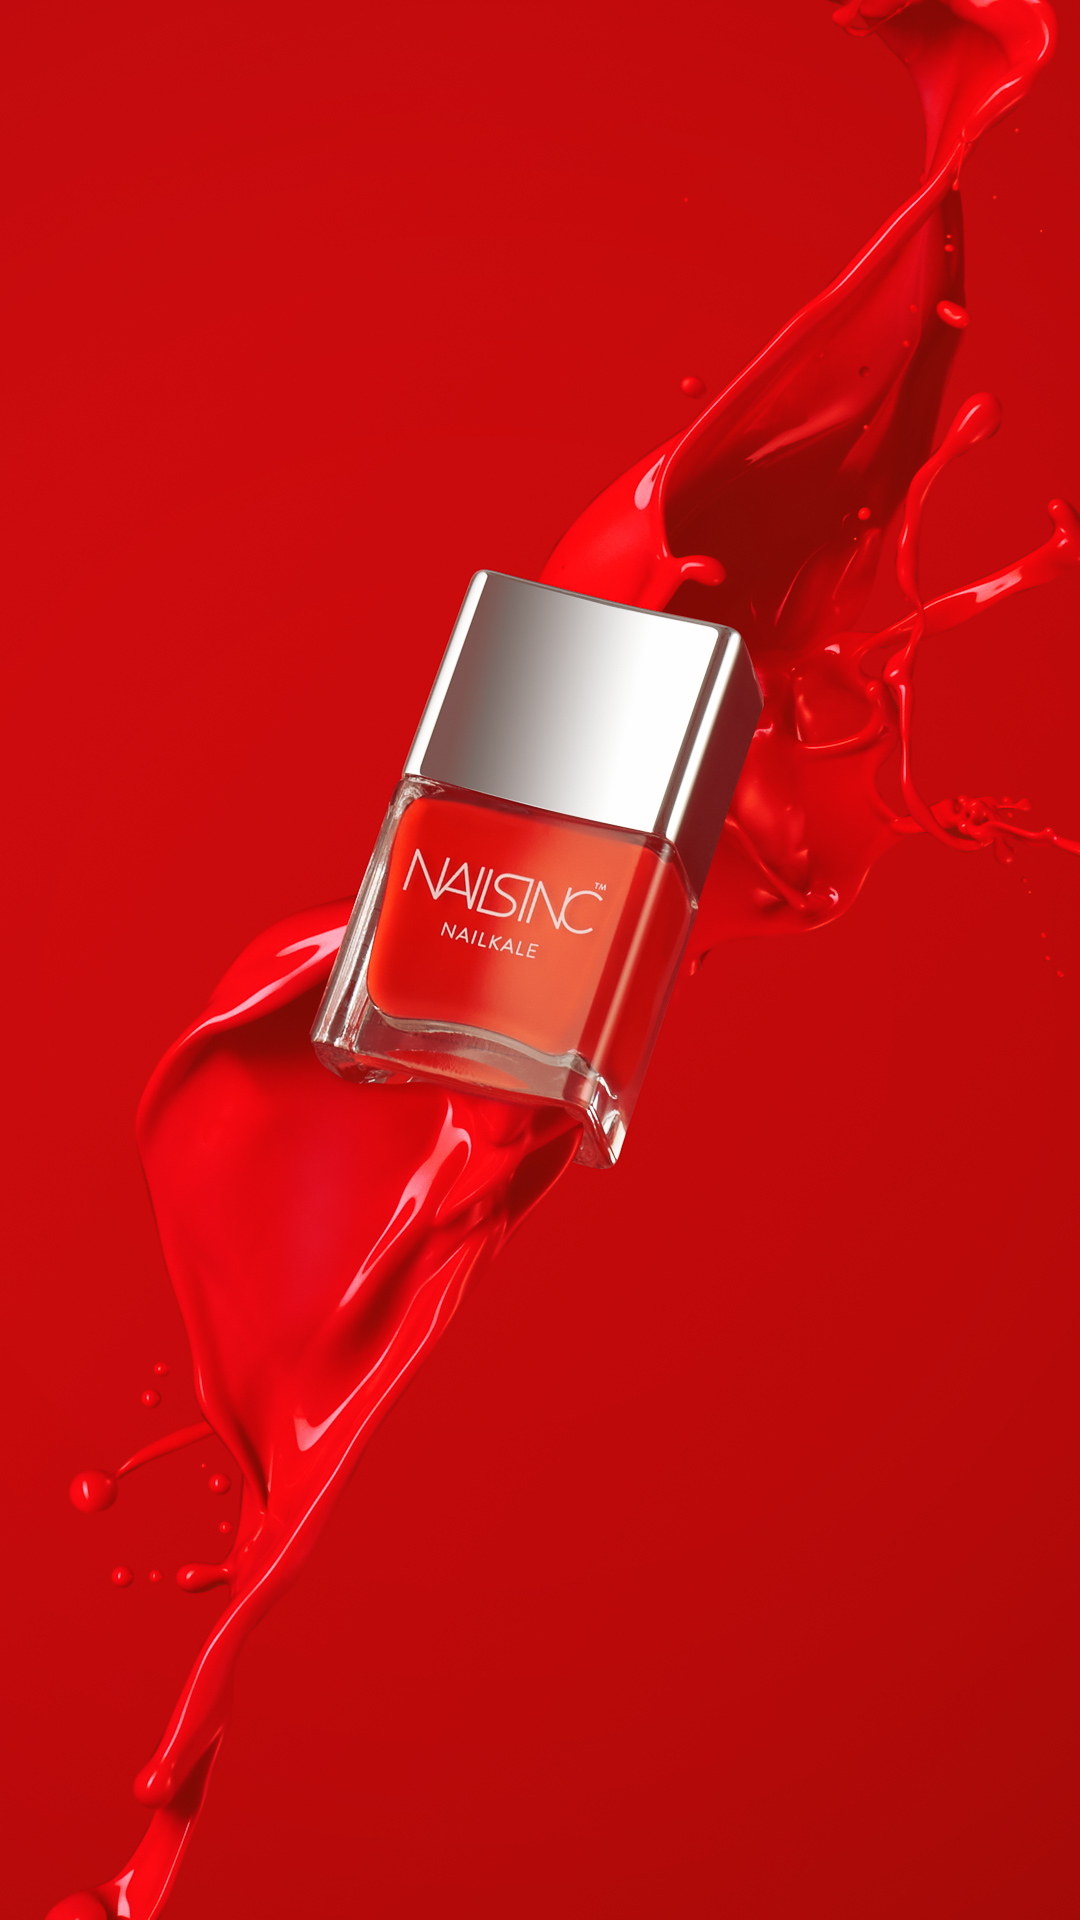 Nails Inc nail polish – Food, Beverage and Product Photography